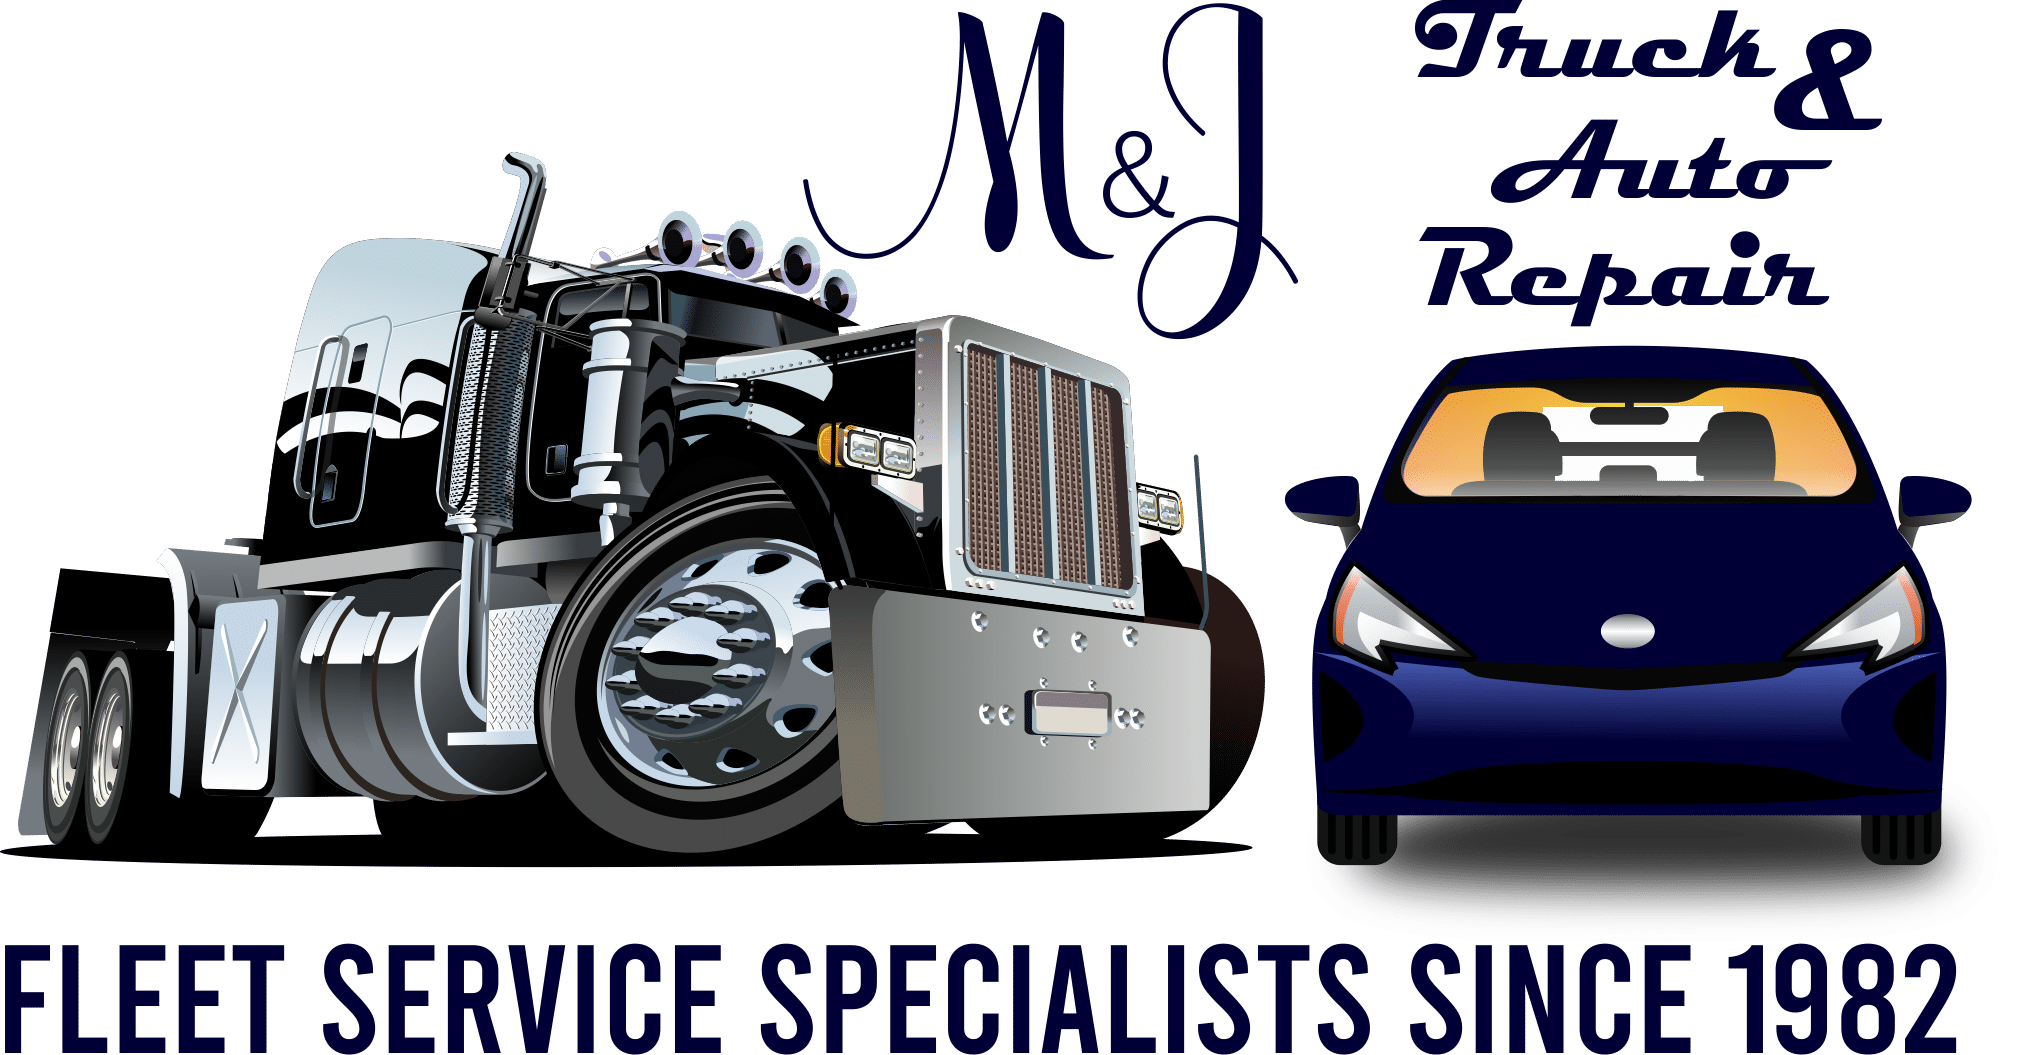 truck repair madison wi, M&J Truck and Auto Repair Inc